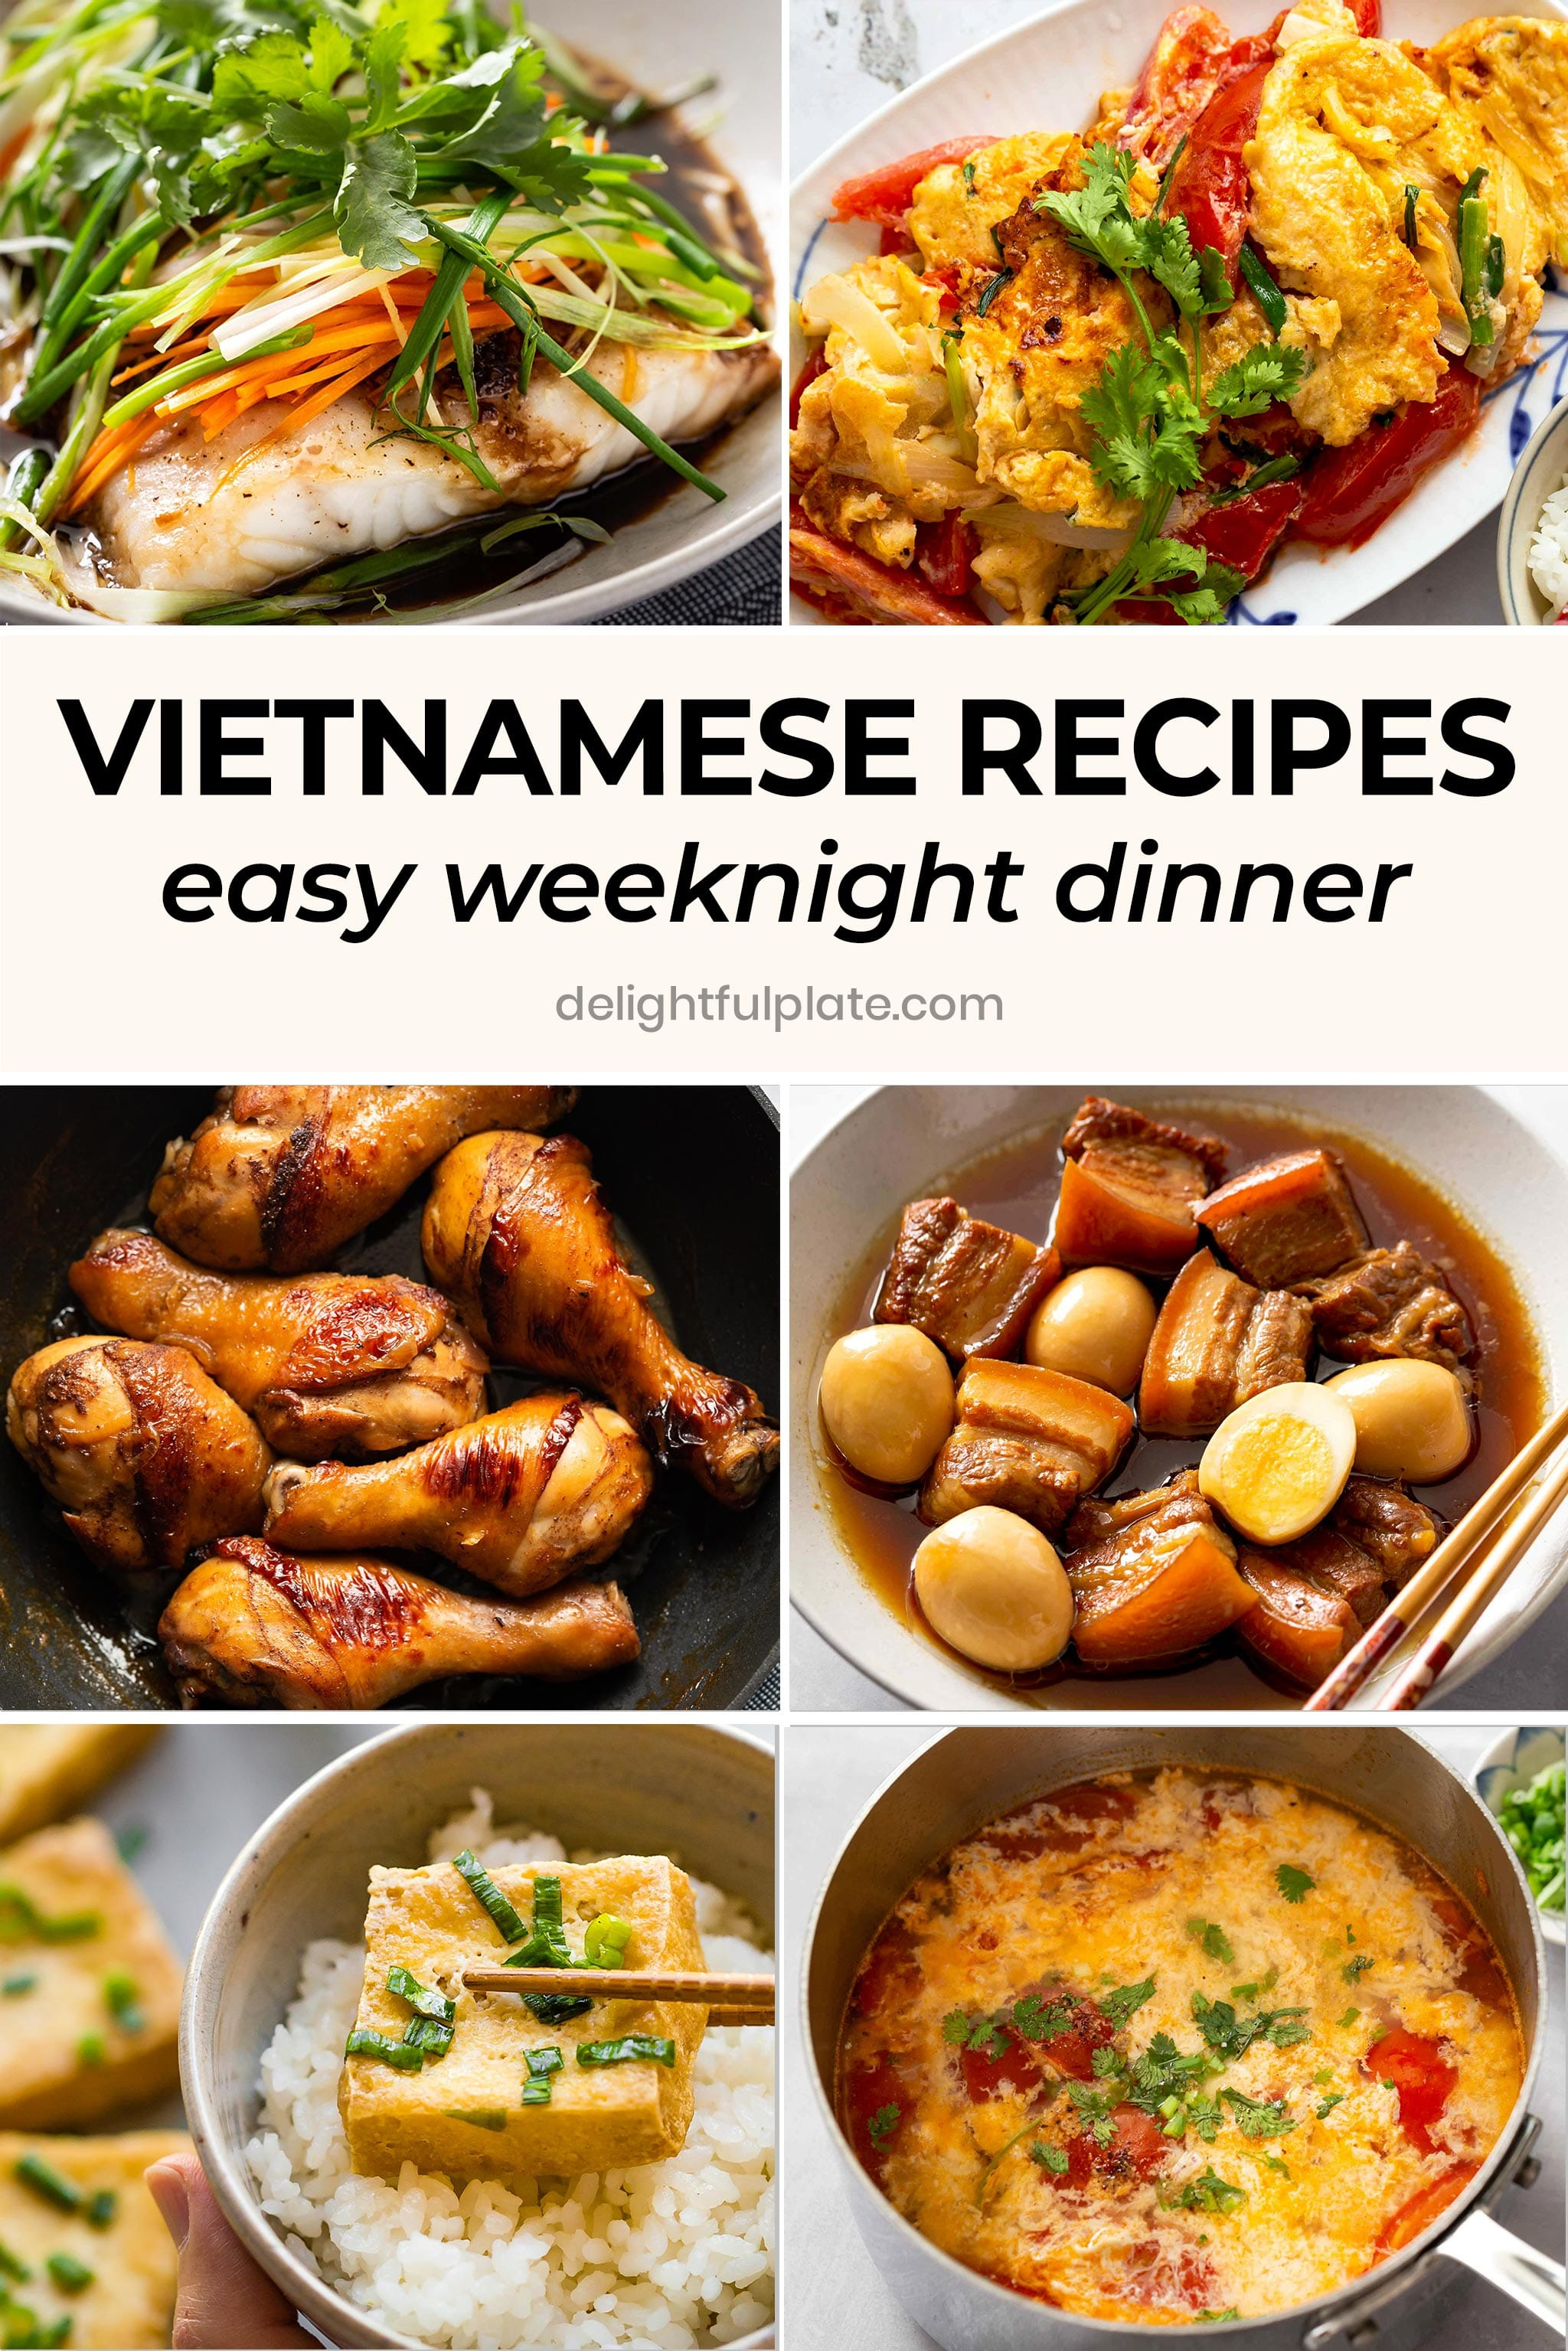 a collage of Vietnamese dishes for easy weeknight dinner